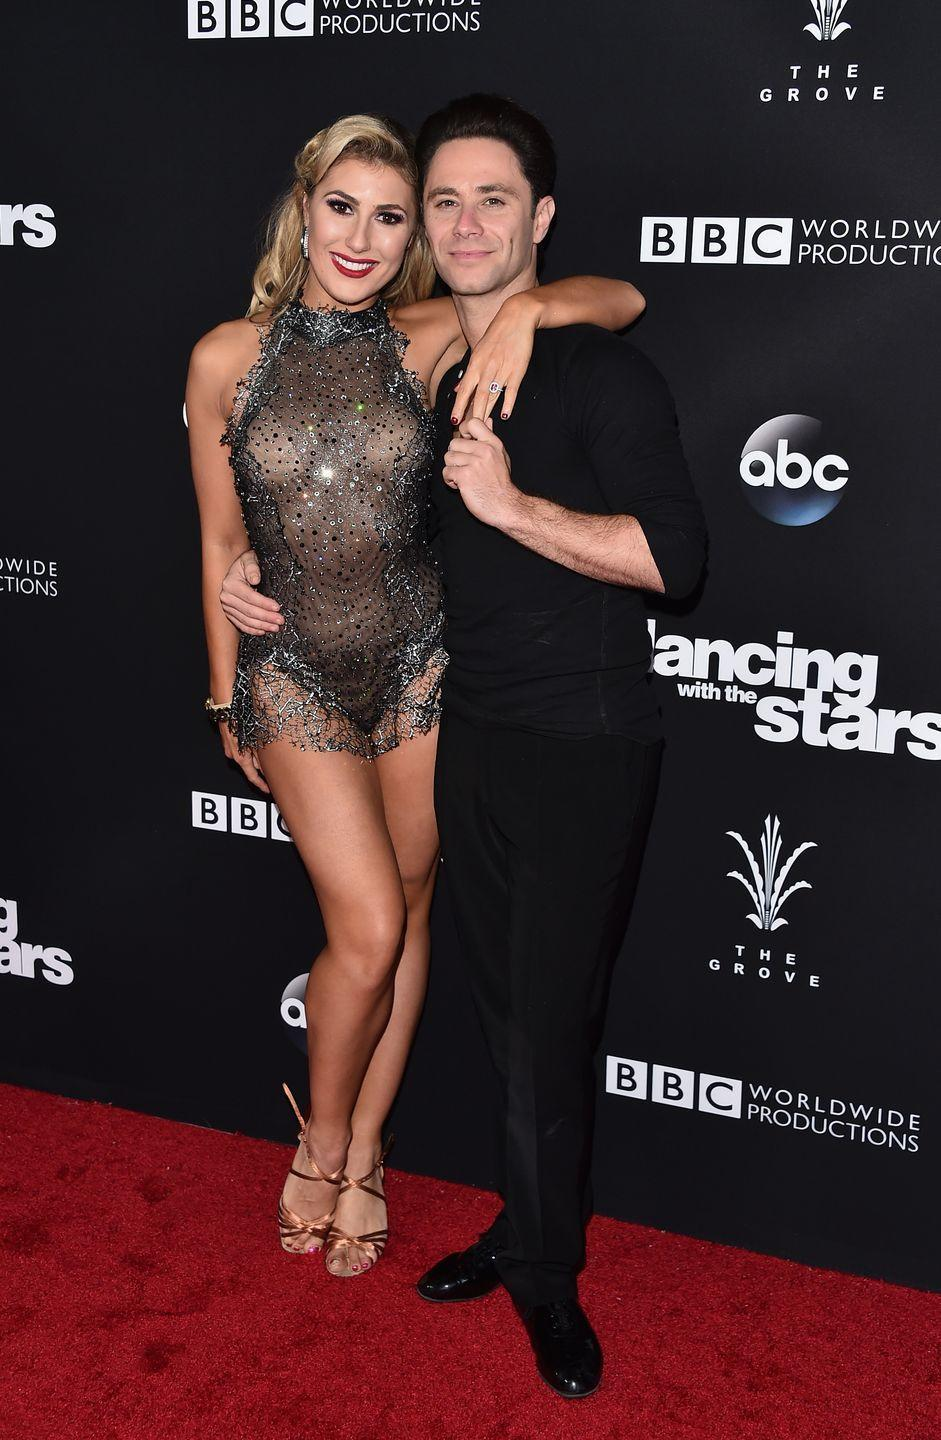 <p>Another set of professional dancers from <em>DWTS</em> partnered up in real life when Emma Slater and Sasha Farber tied the knot in 2018. The couple met on set of the show after Emma joined the cast as a pro in 2013. </p>